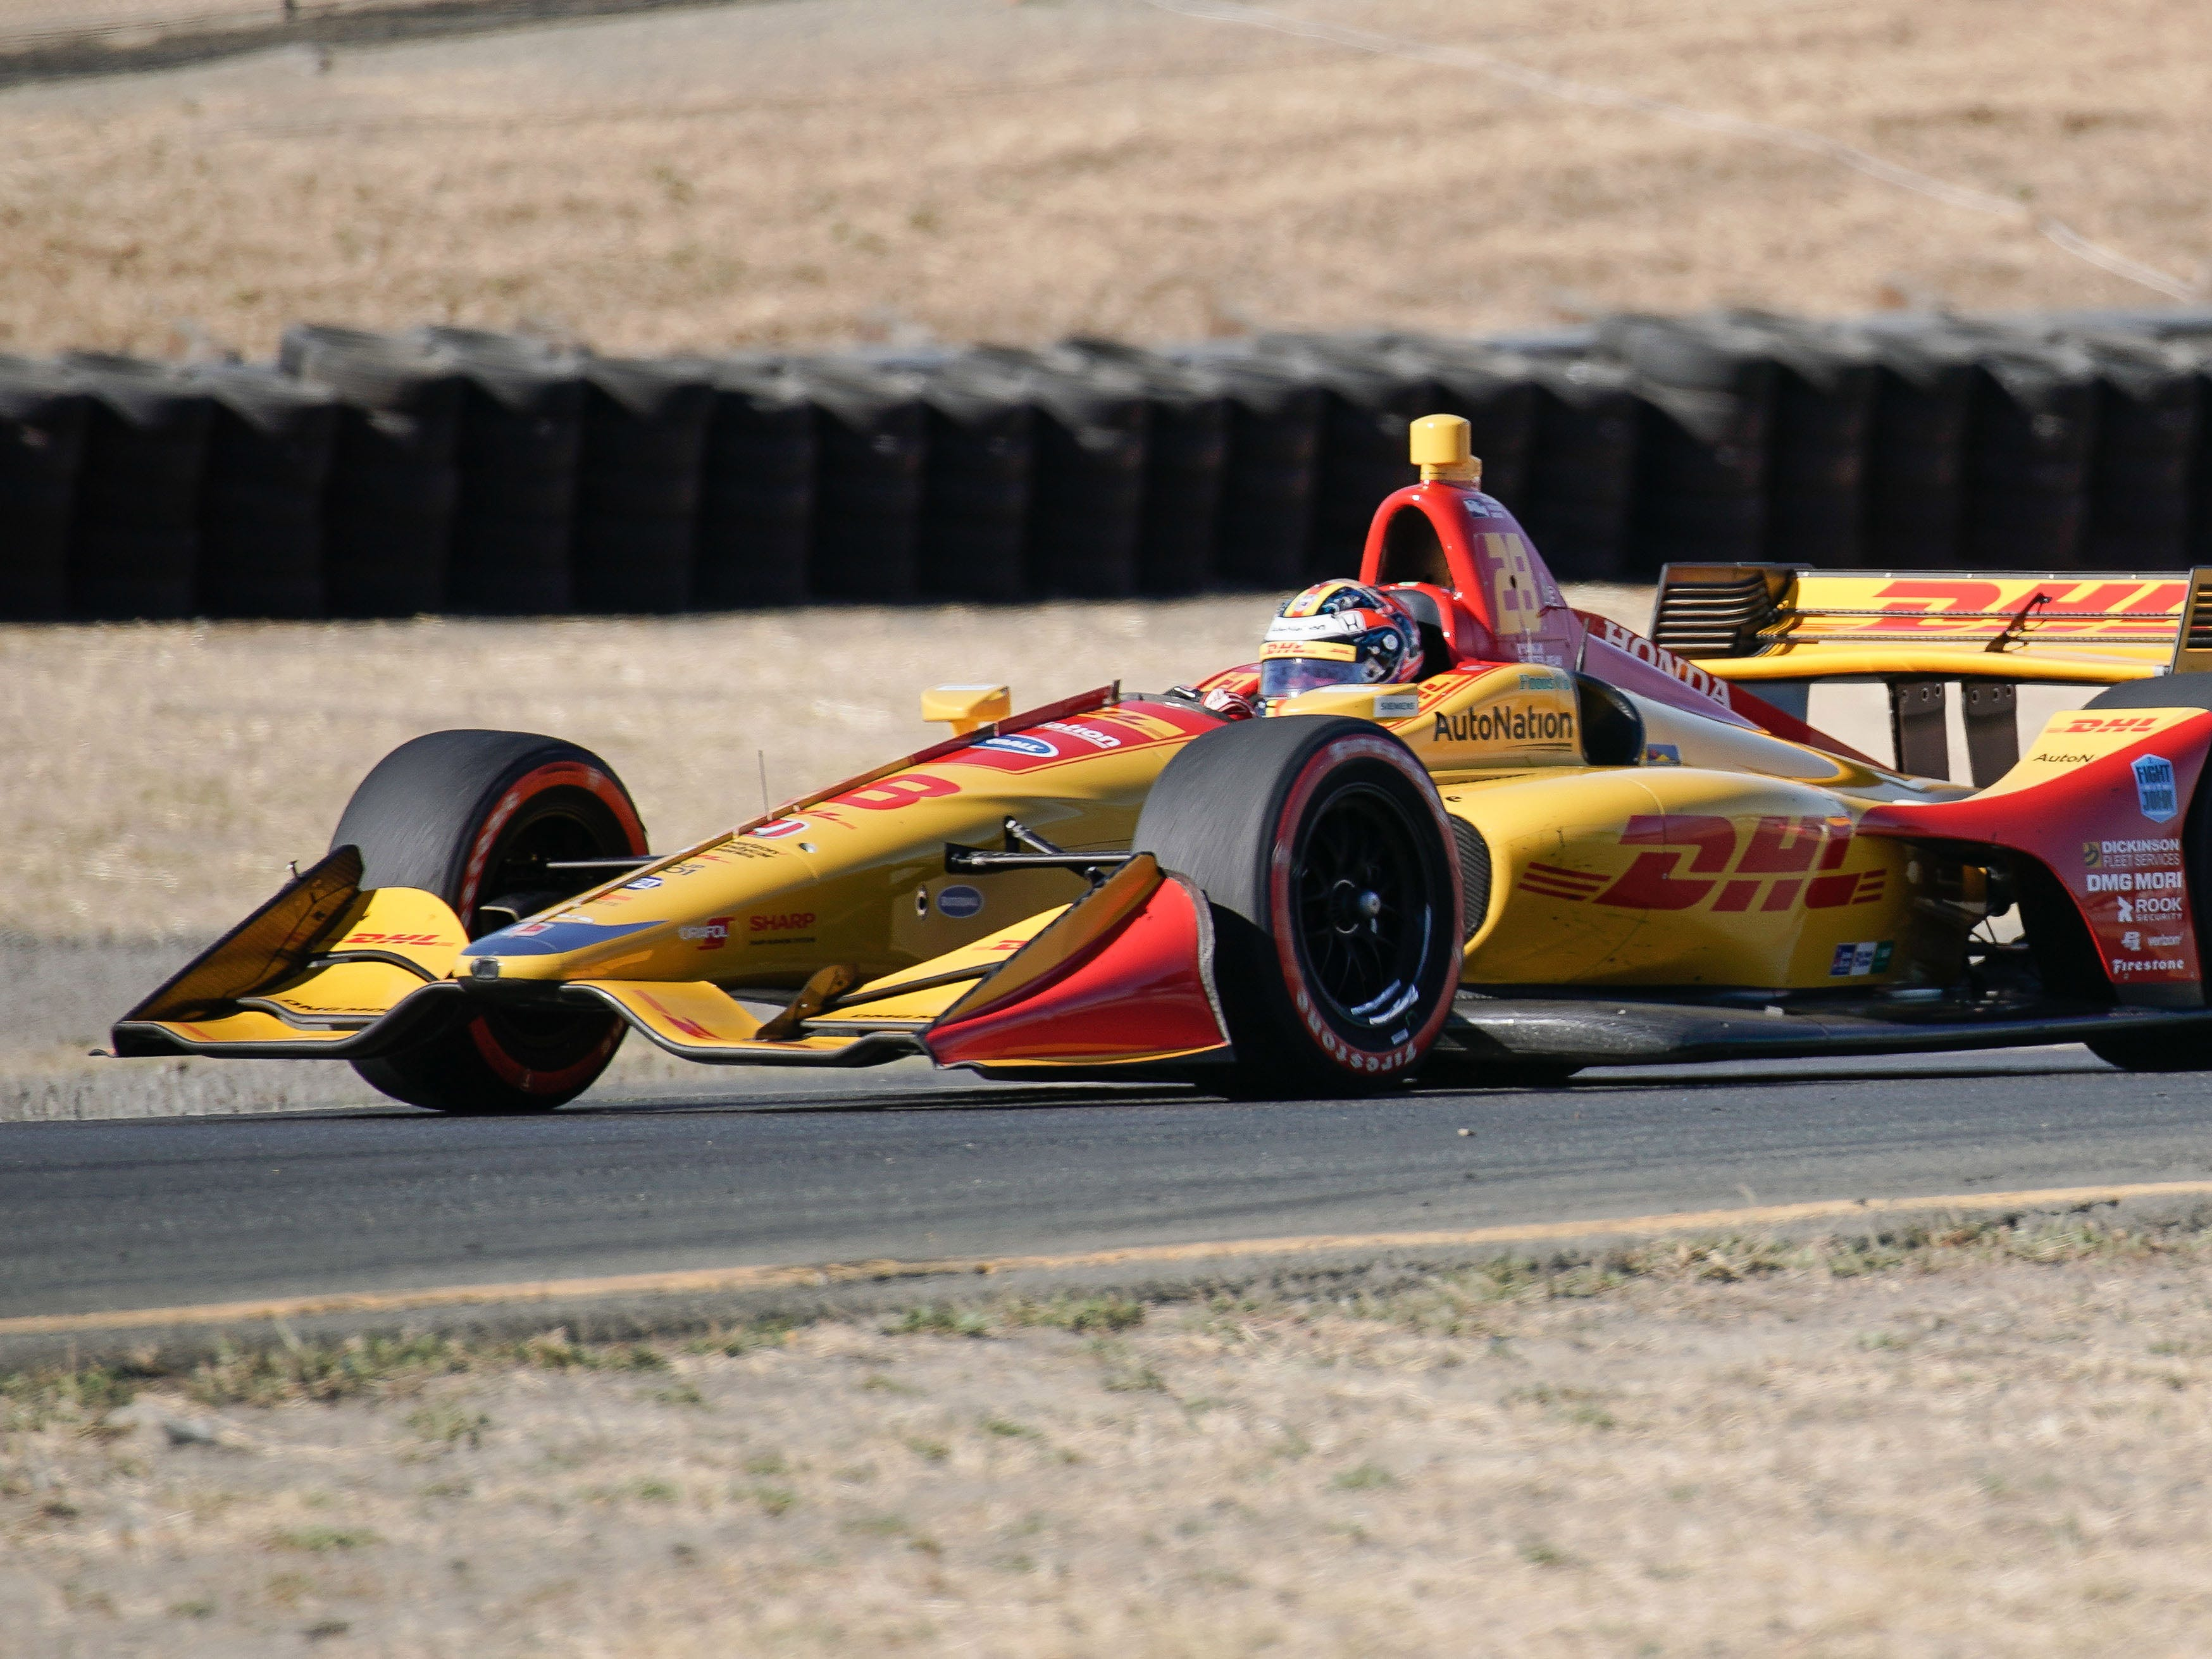 Sep 16, 2018; Sonoma, CA, USA;  Indycar driver Ryan Hunter-Reay (28)  during the Grand Prix of Sonoma at Sonoma Raceway. Mandatory Credit: Stan Szeto-USA TODAY Sports